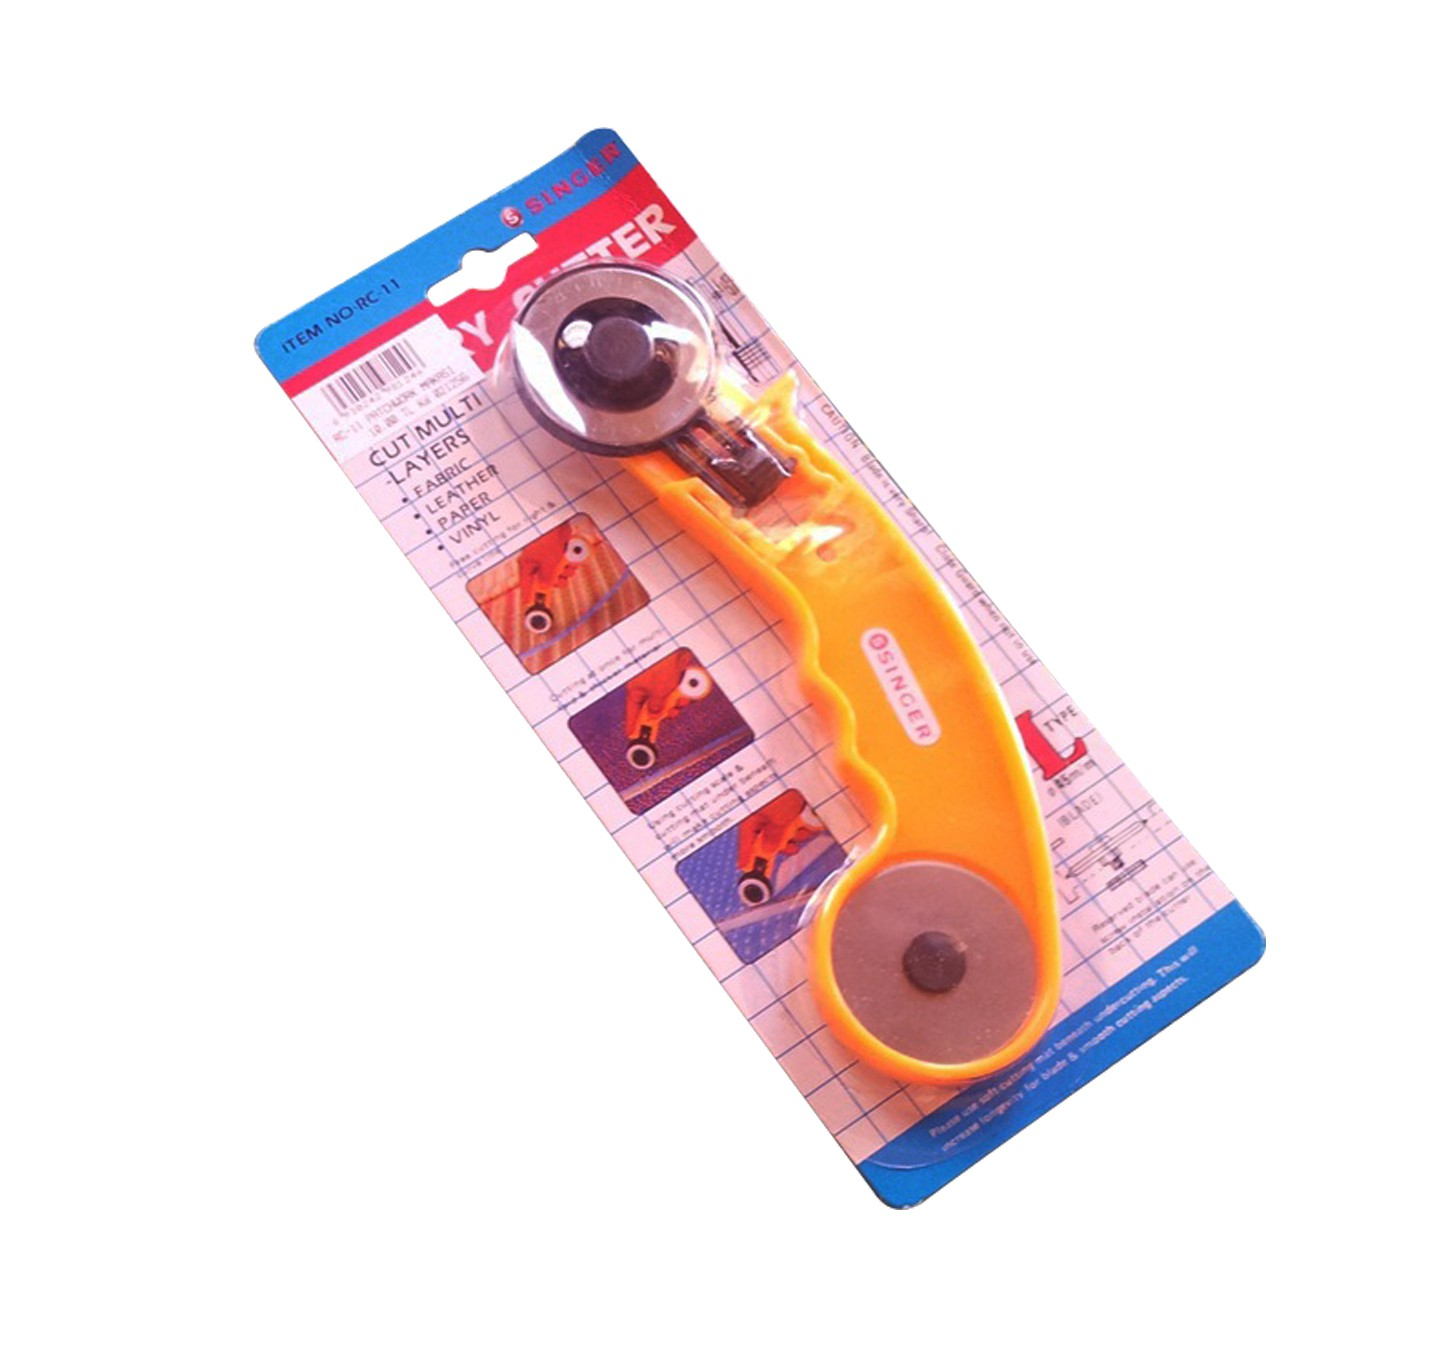 SINGER RC - 11 PATCHWORK ROTARY CUTTER